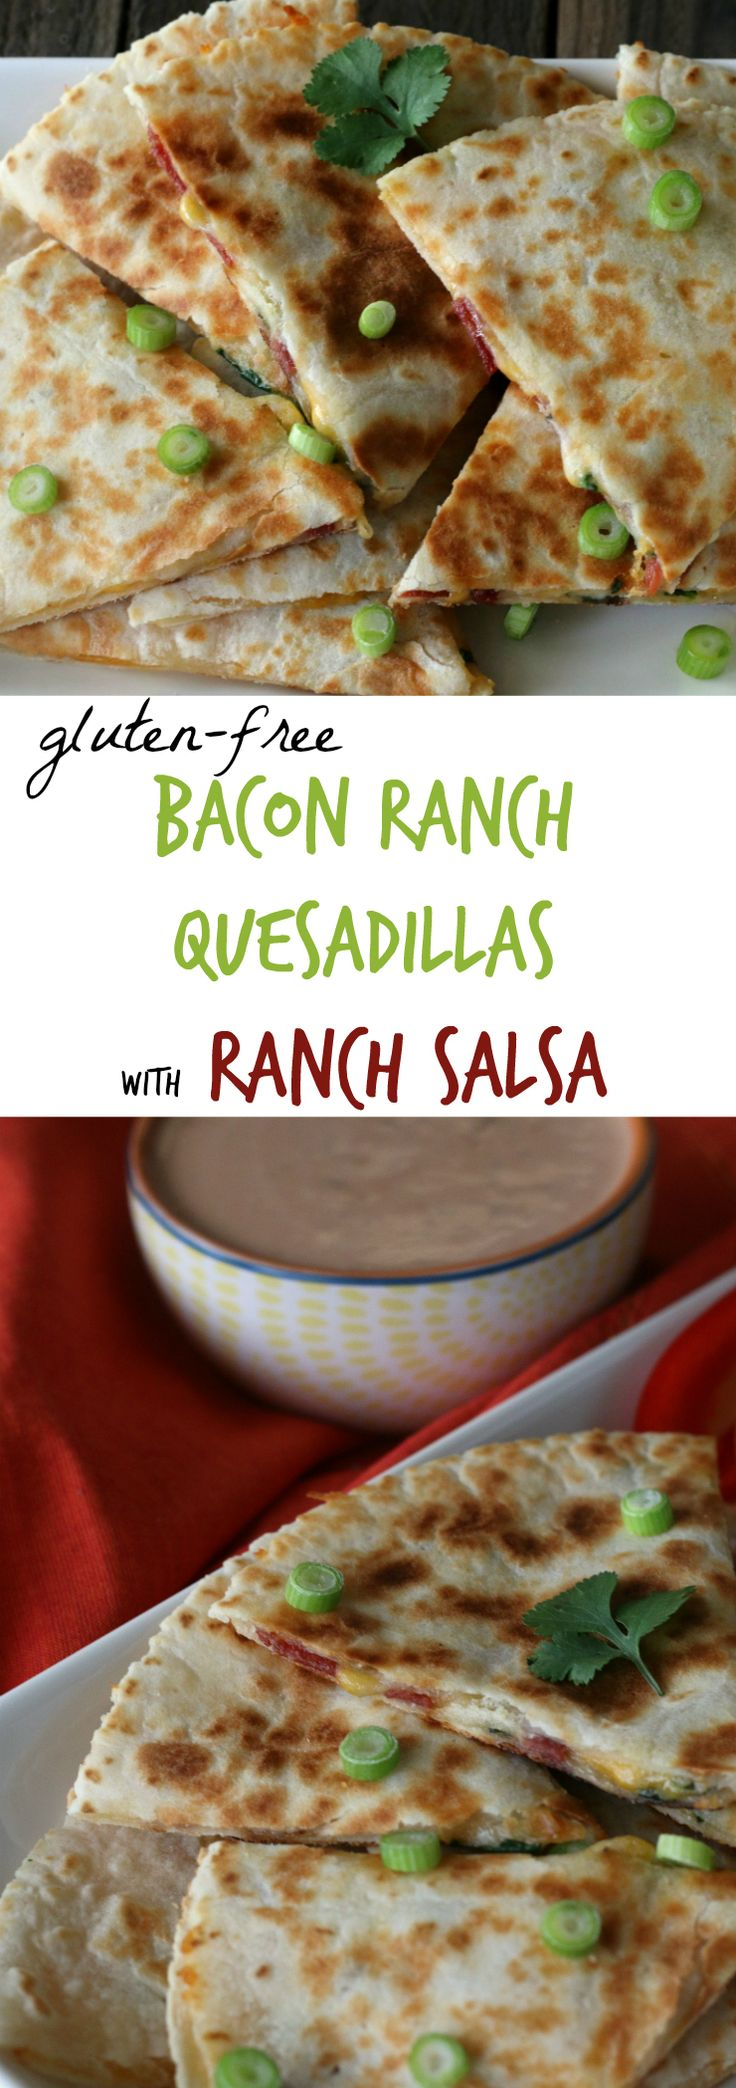 Gluten-free Bacon Ranch Quesadillas with Ranch Salsa. Easy weeknight dinner recipe!